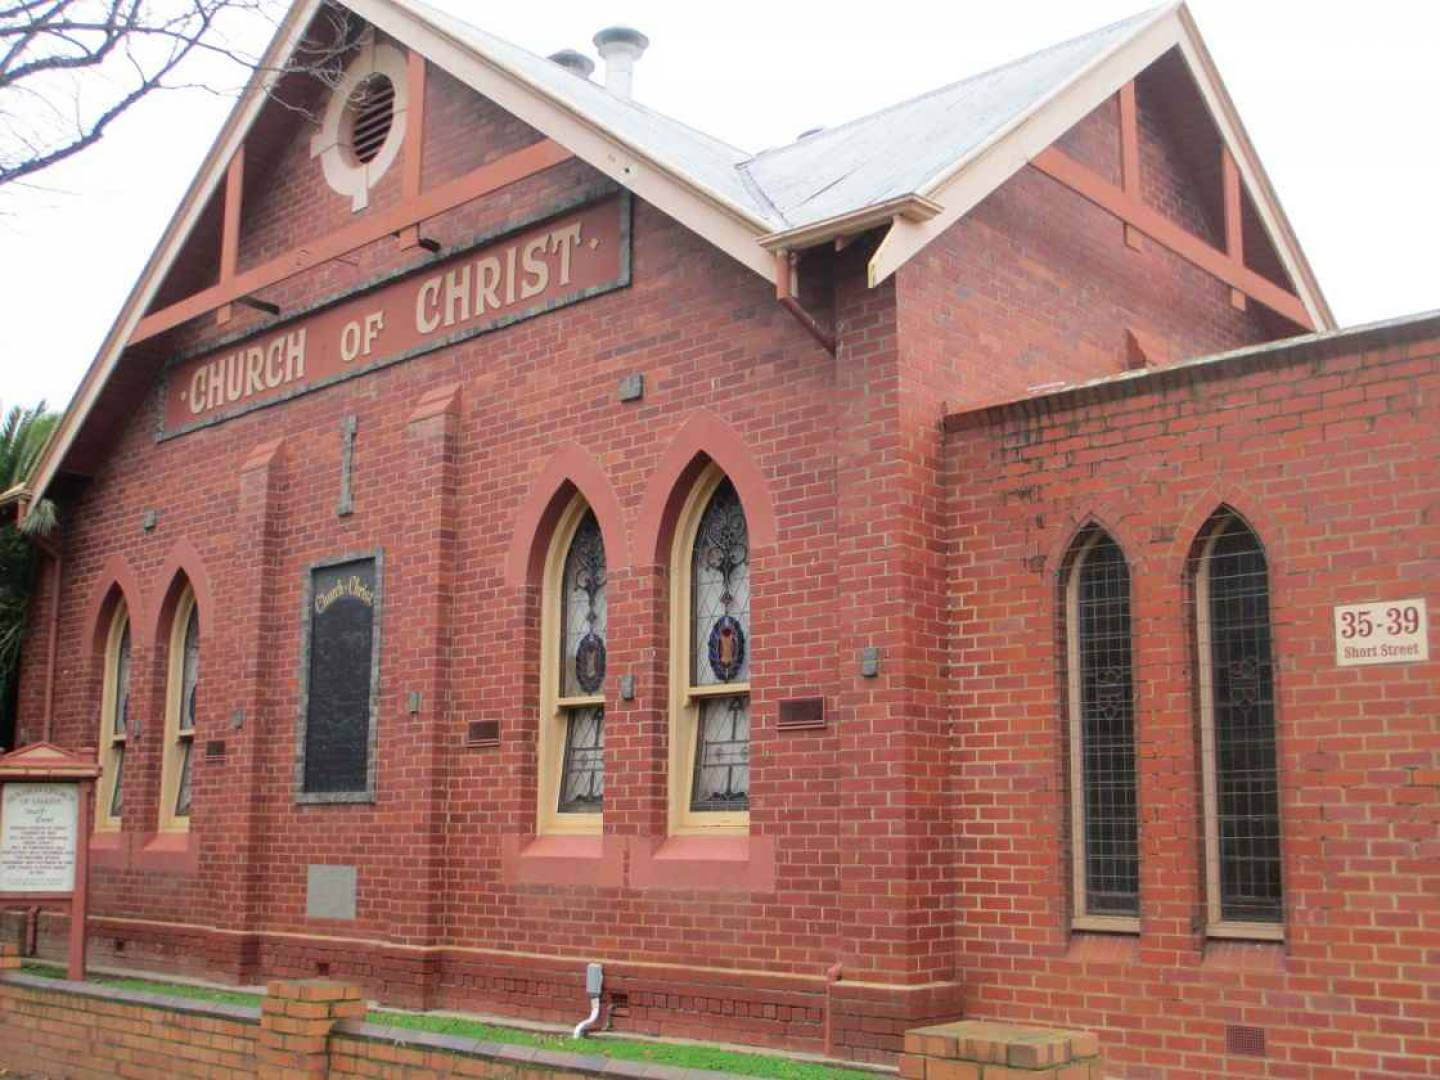 Bendigo Church of Christ